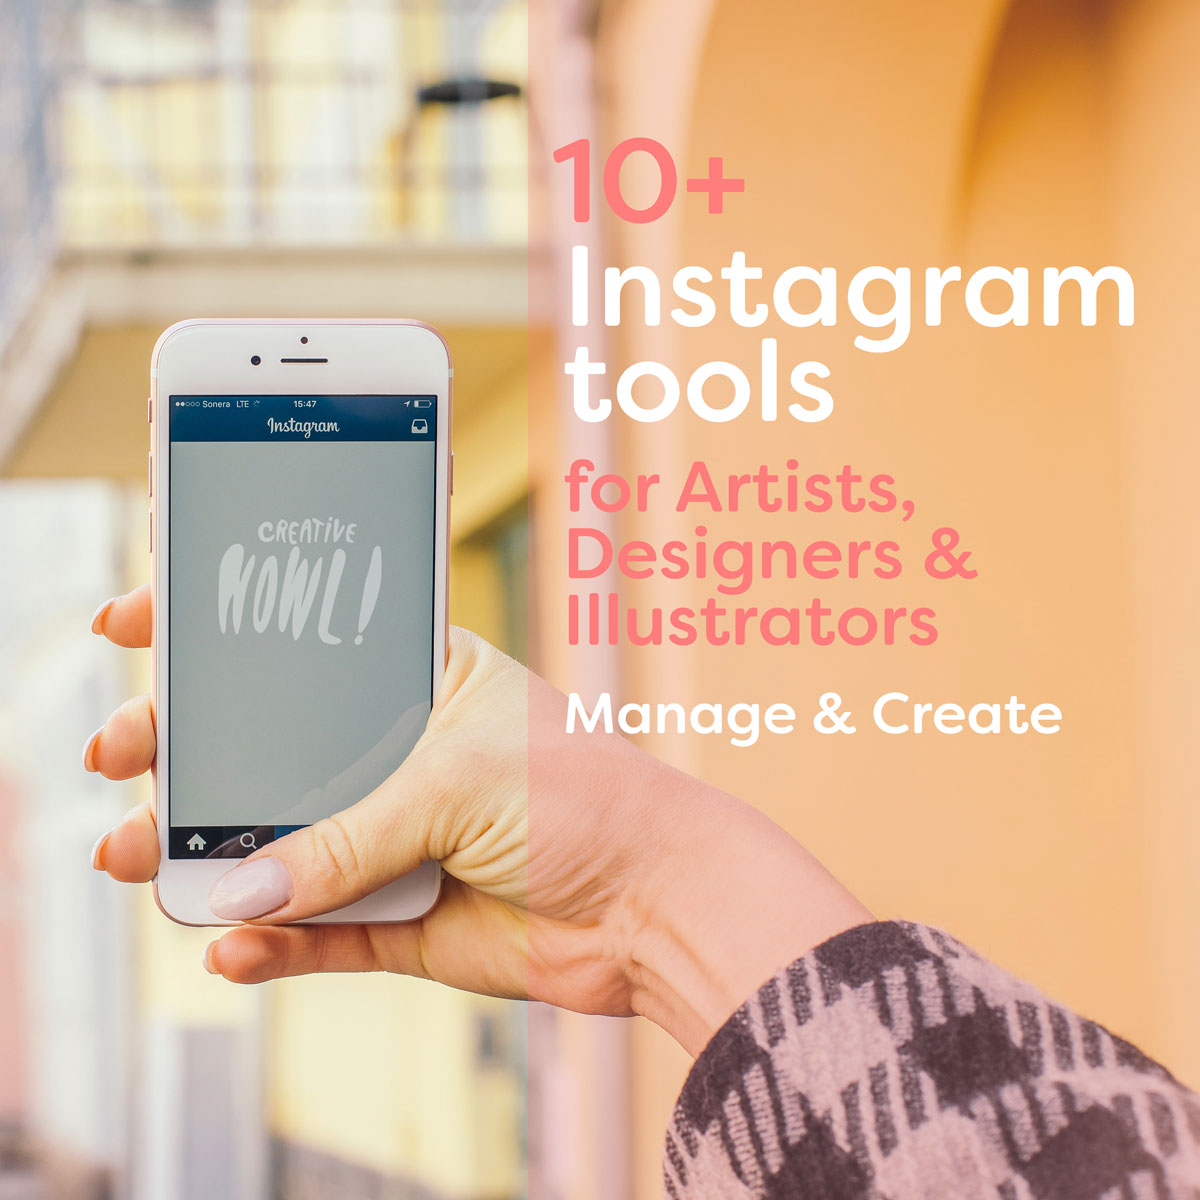 Instagram tools for artists